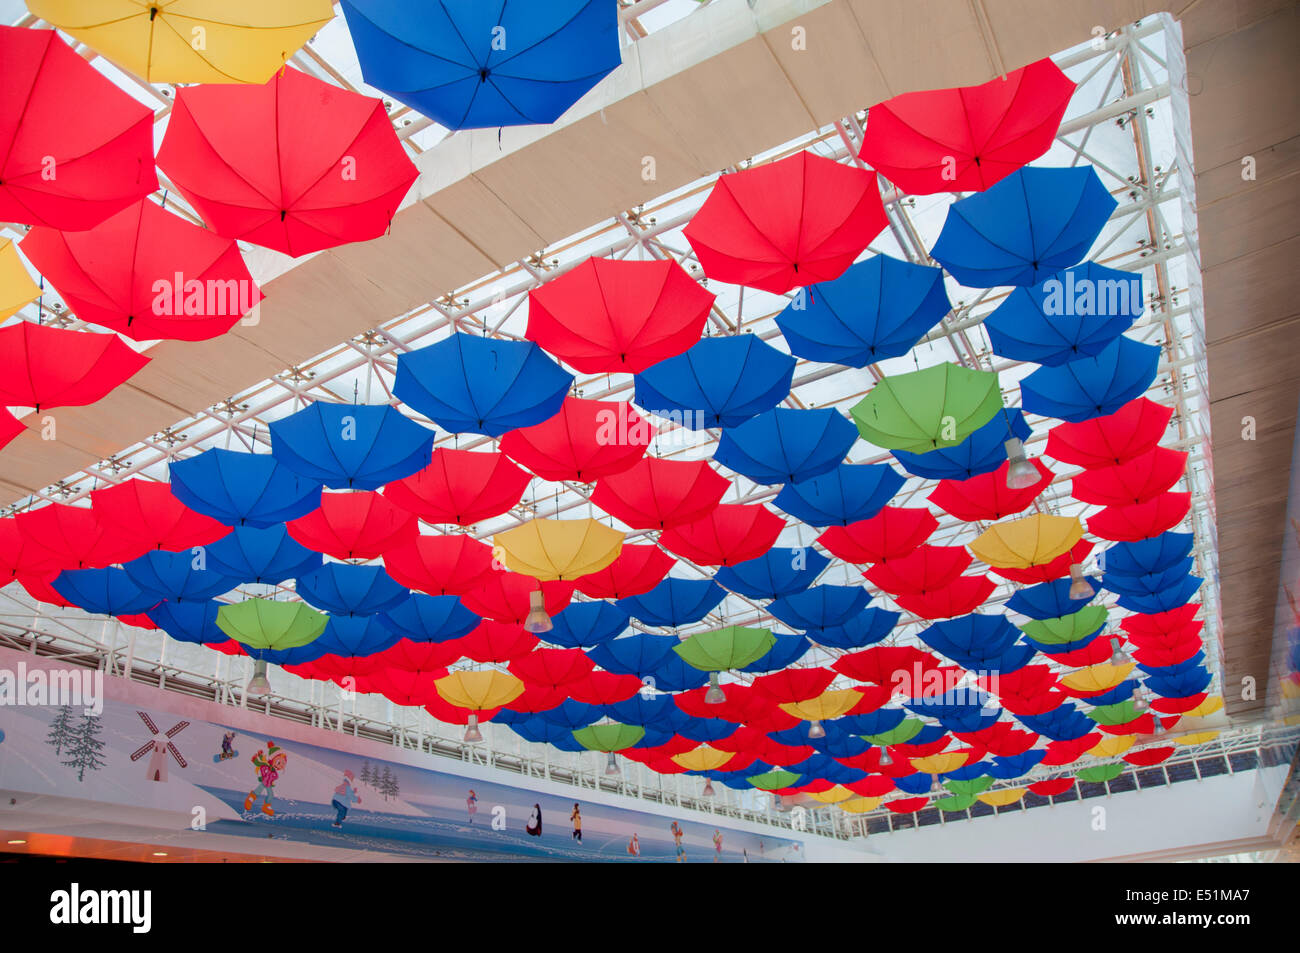 Colorful umbrellas hanging  in roof - Stock Image